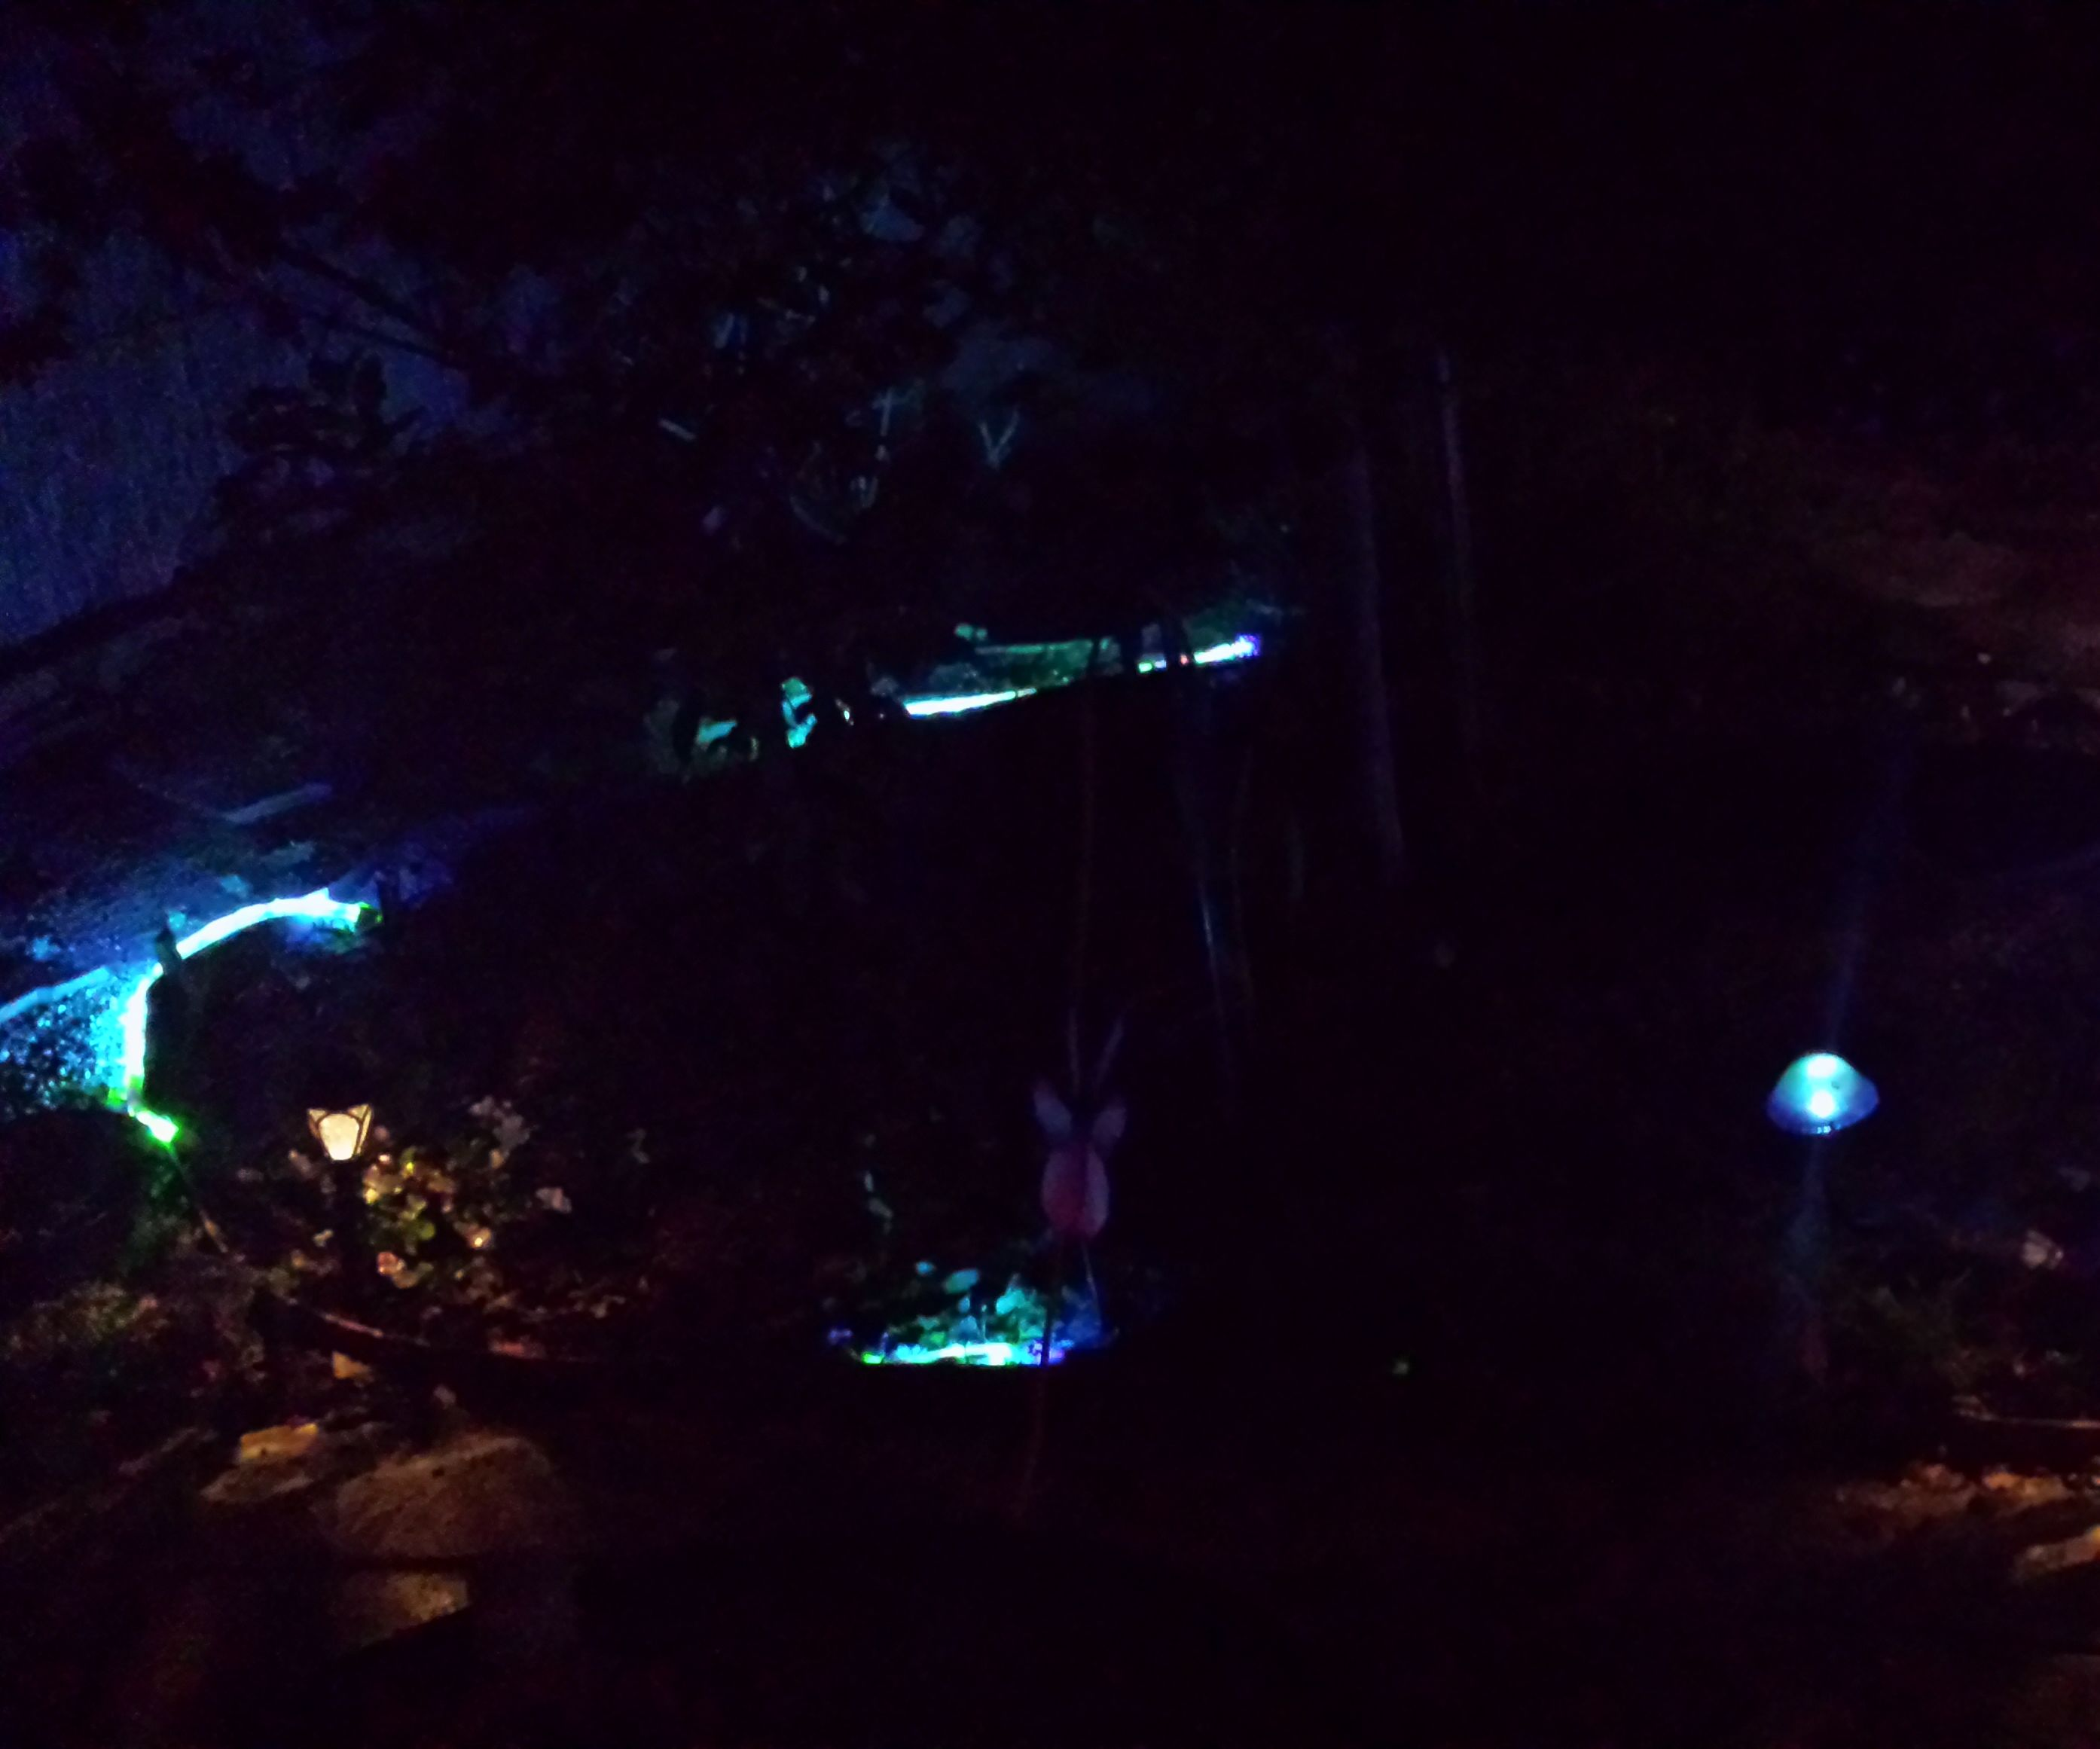 Solar powered color changing yard lighting.